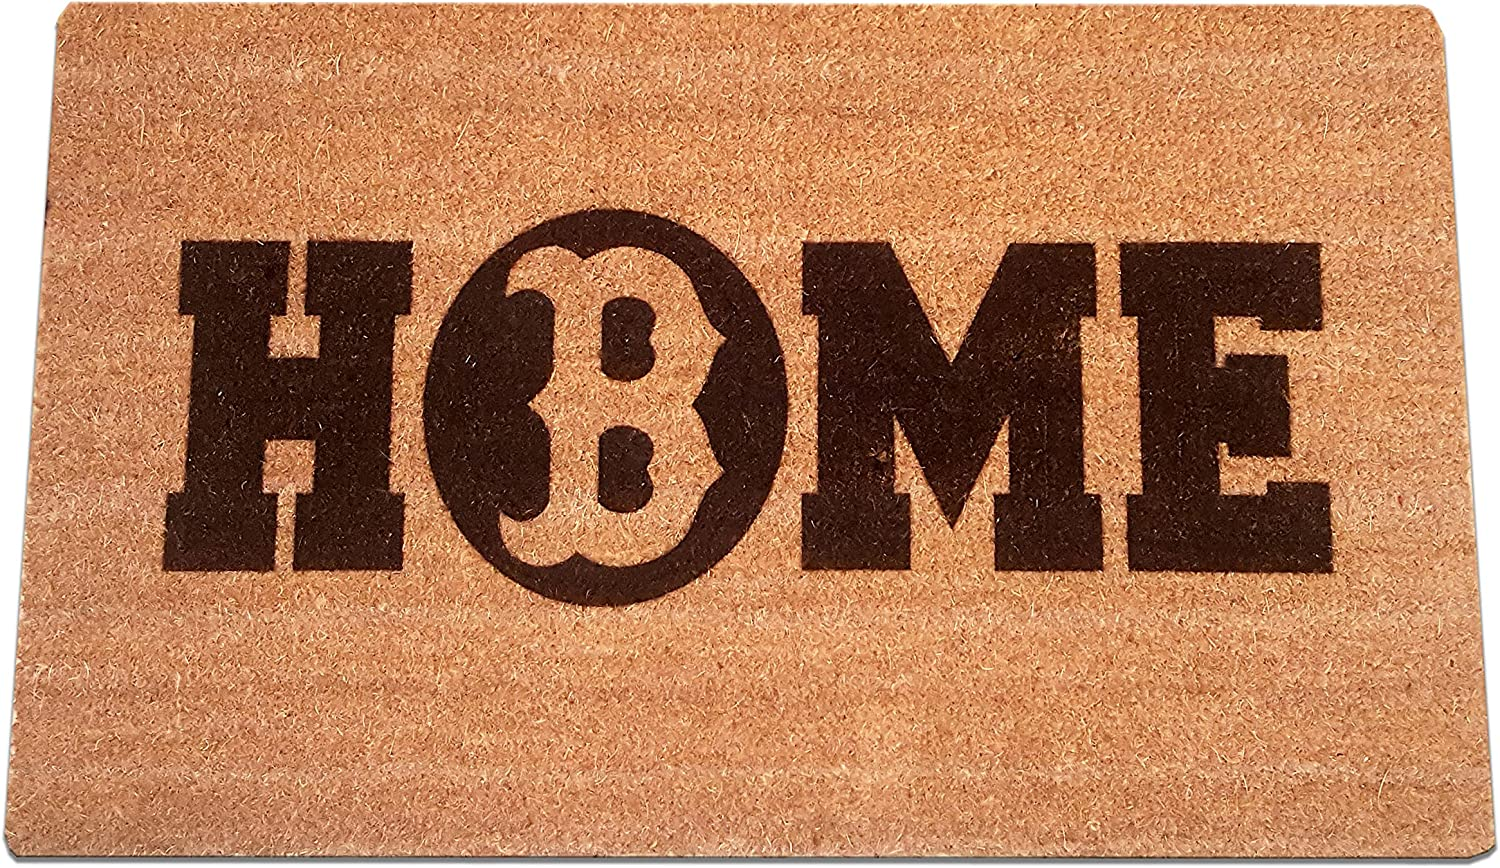 "Boston REDSOX Home Laser Engraved Coir Fiber Welcome Doormat 30"" x 18"""